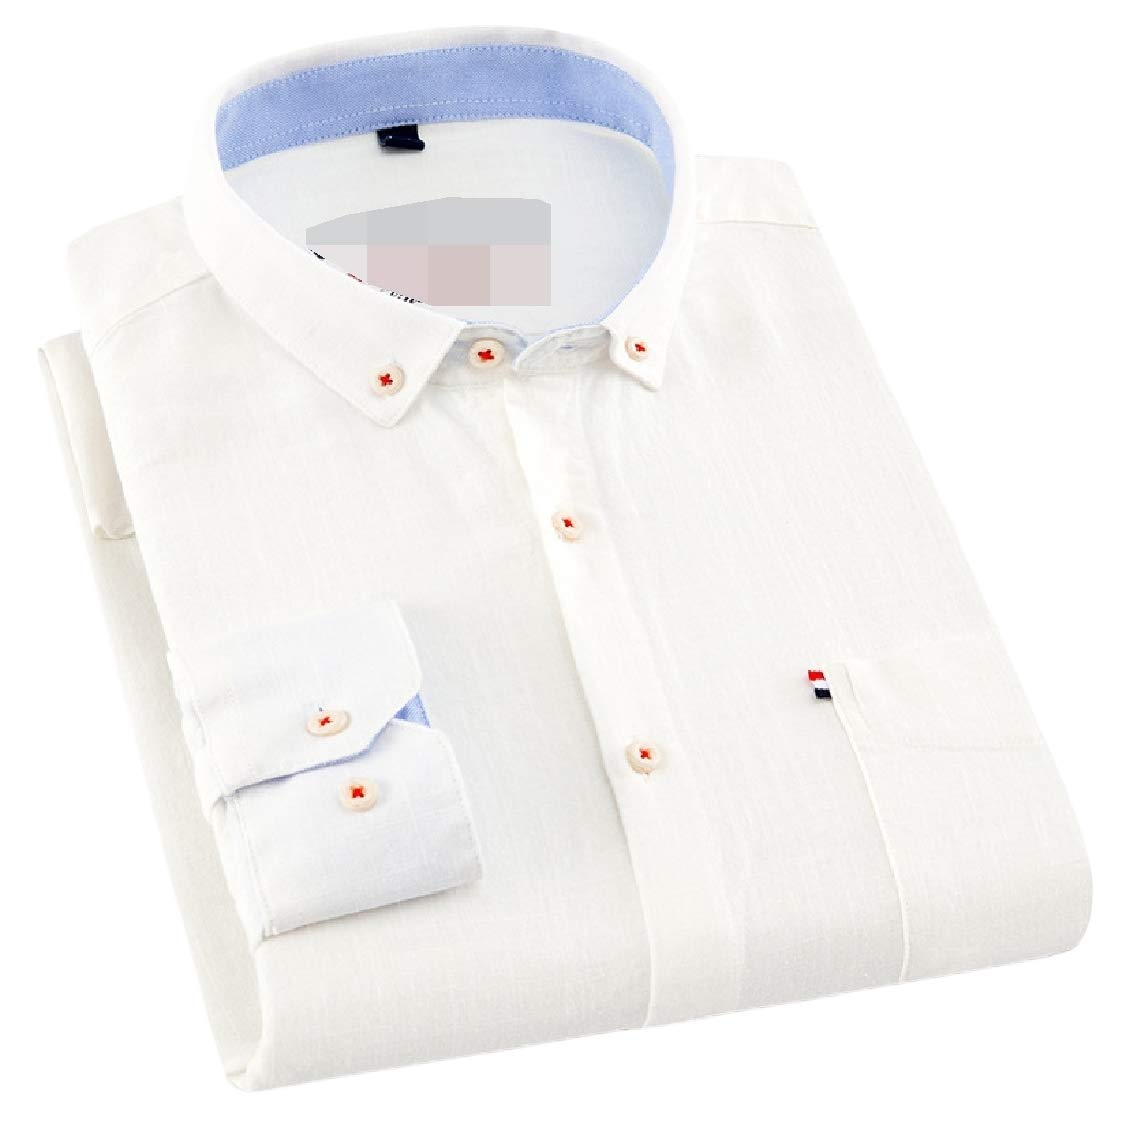 Lutratocro Mens Long-Sleeve All-Match Slim Pure Color Cotton Button Down Shirts